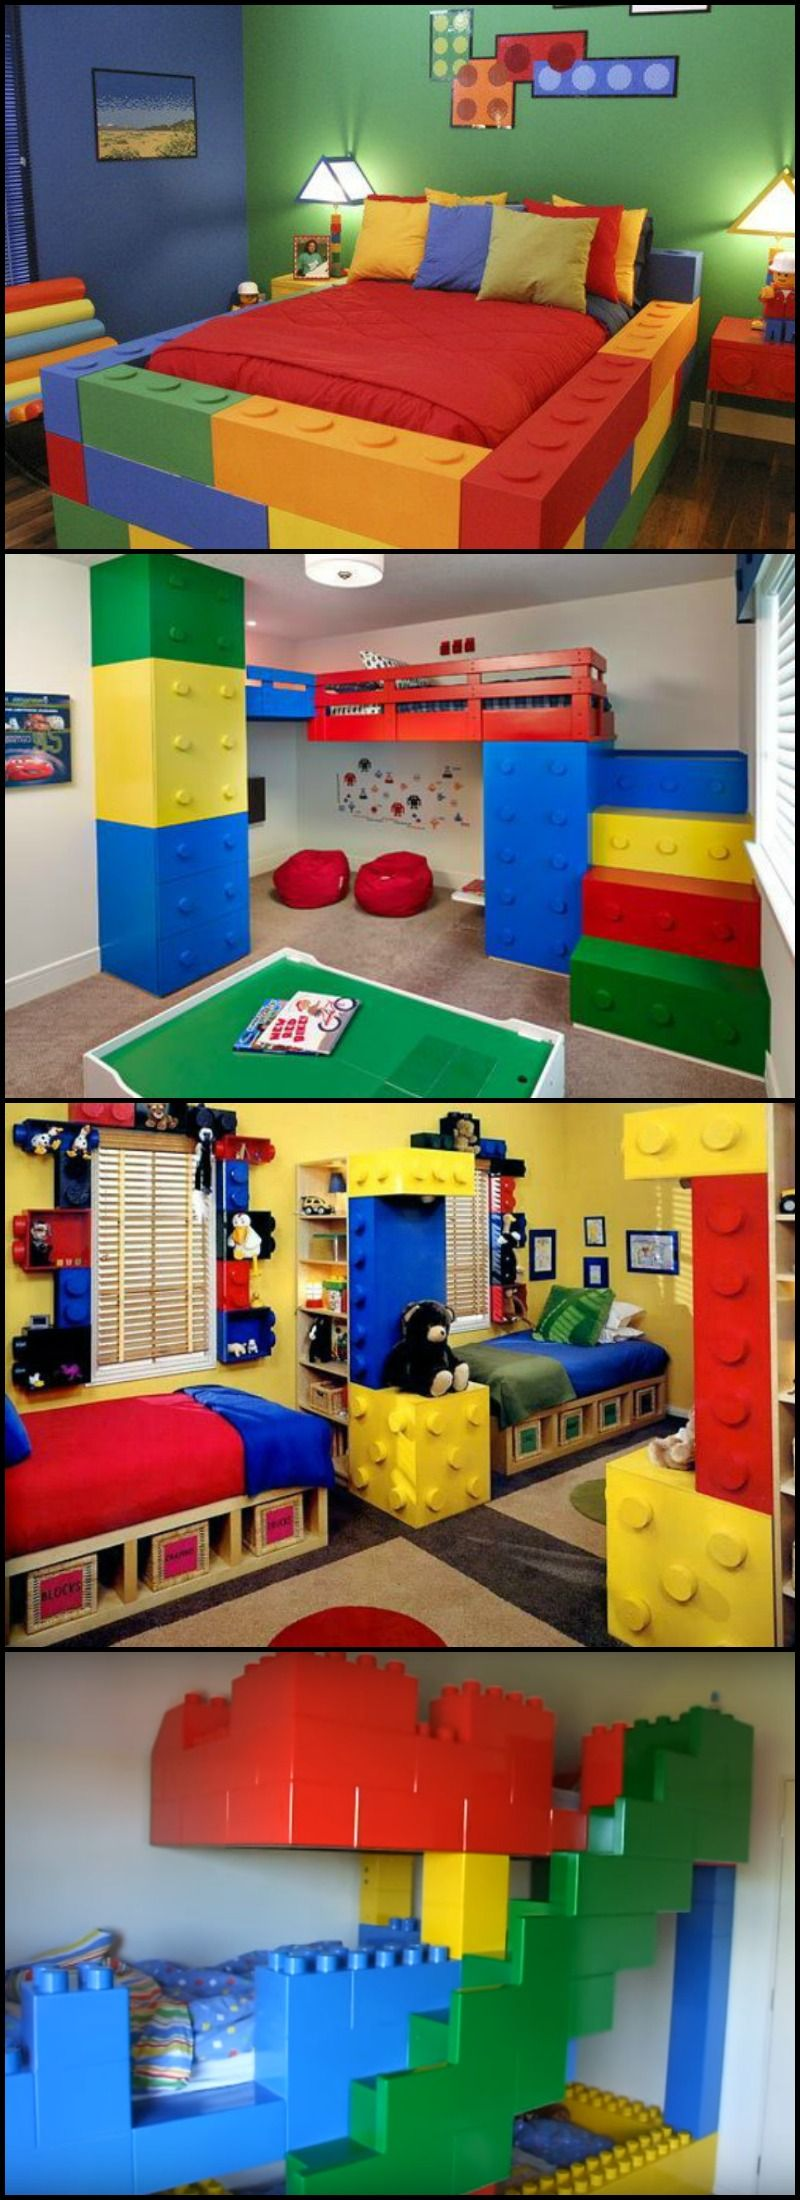 Lego Themed Bedroom Ideas Is There Someone In Your Life Wedded To Then Why Not Give Them A Start Small And Build Up As